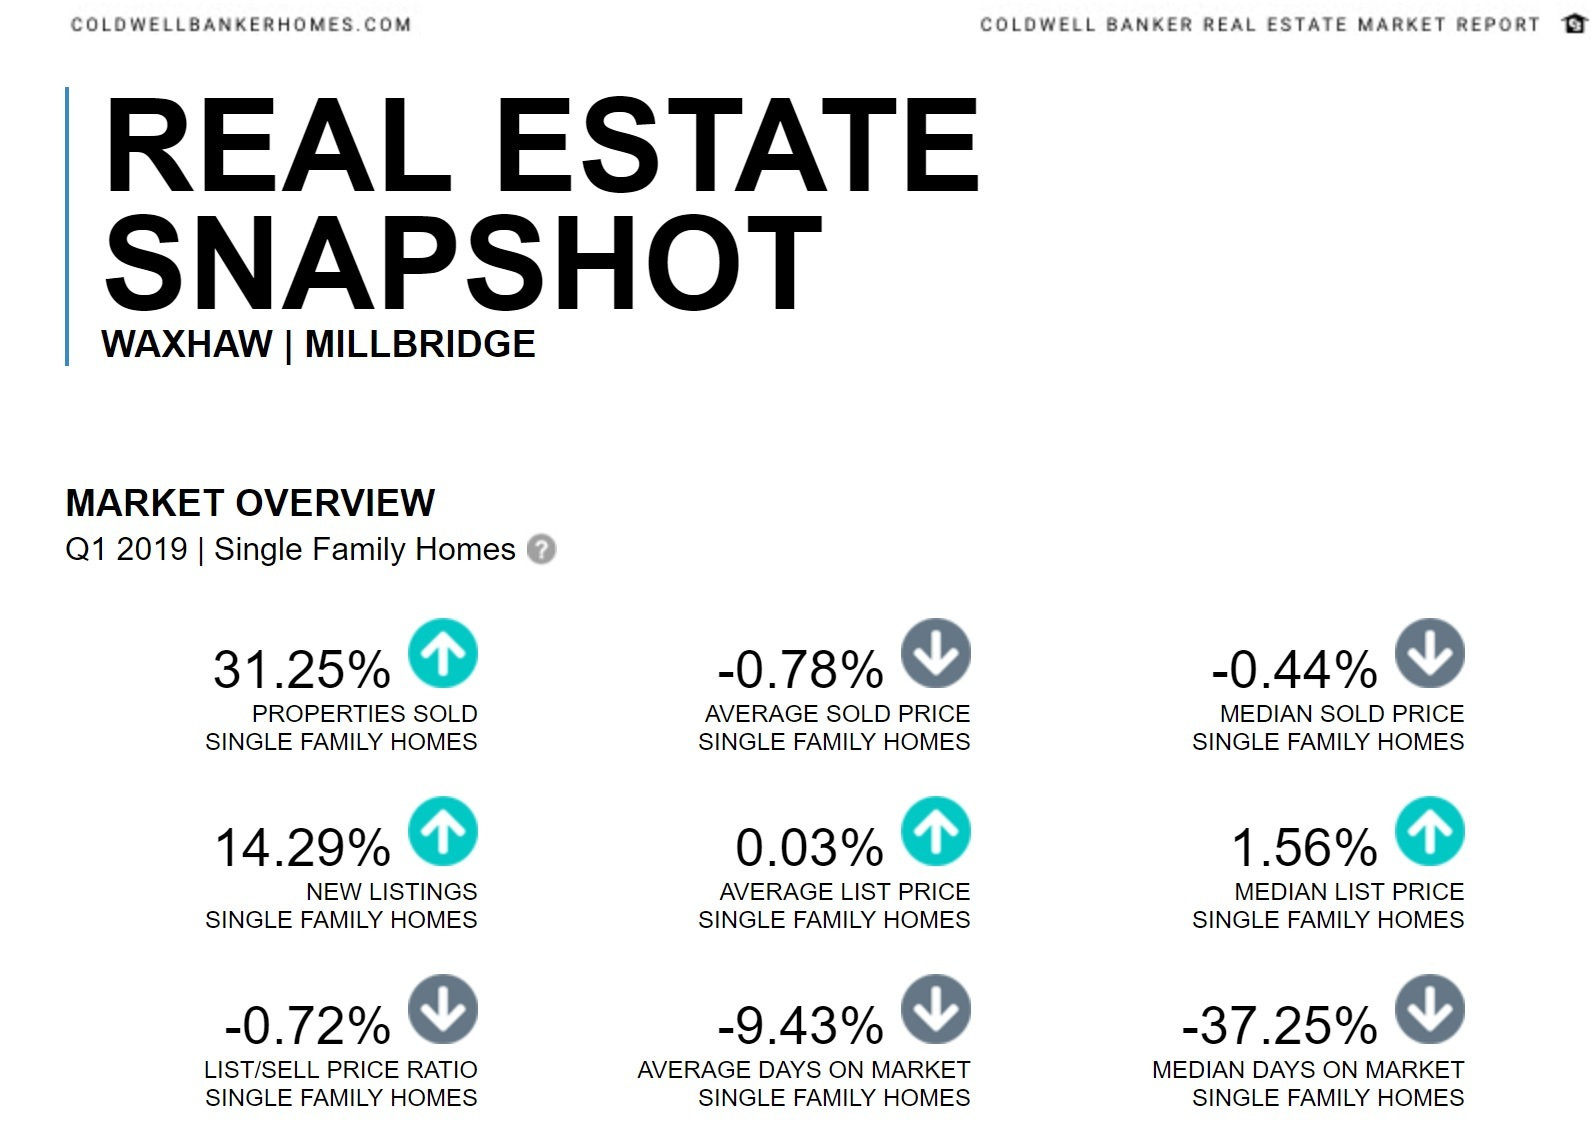 Millbridge in Waxhaw Real Estate Snapshot Qtr 1 2019